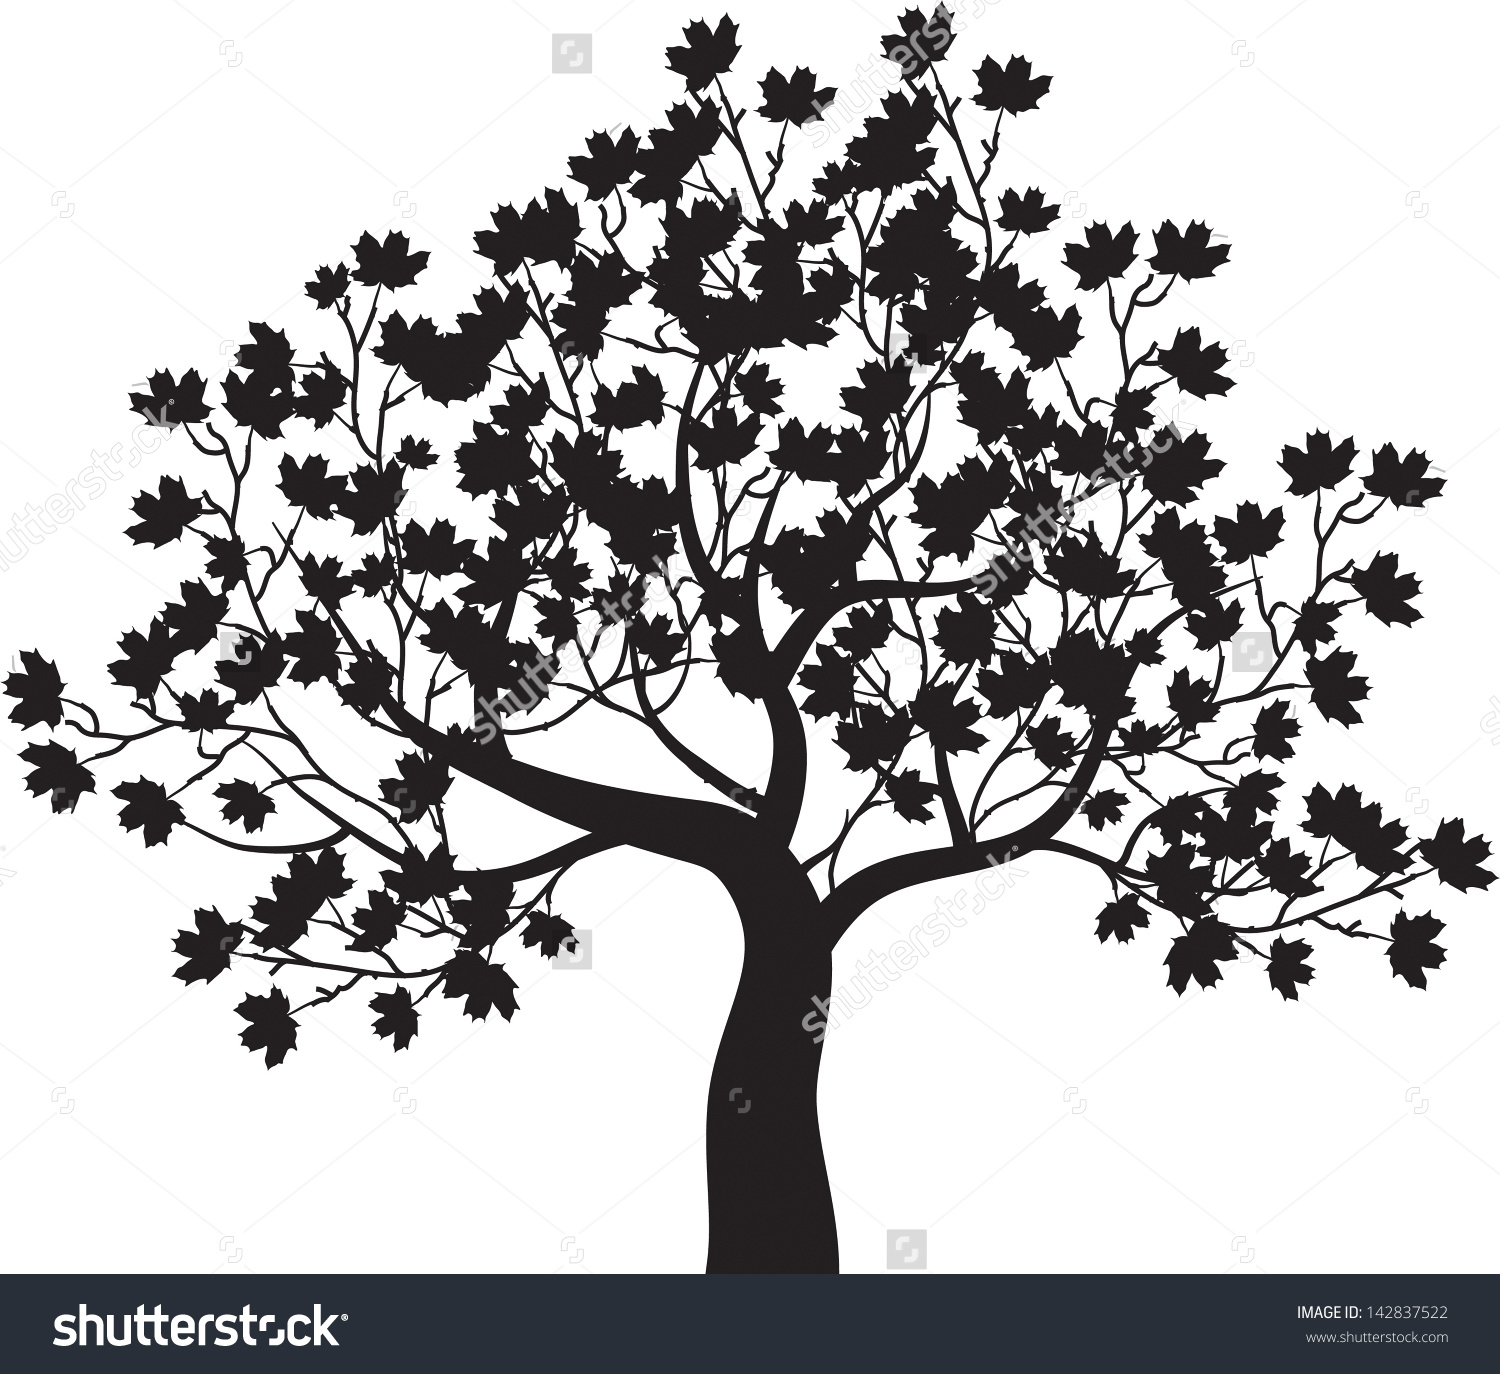 Maple Tree clipart #12, Download drawings